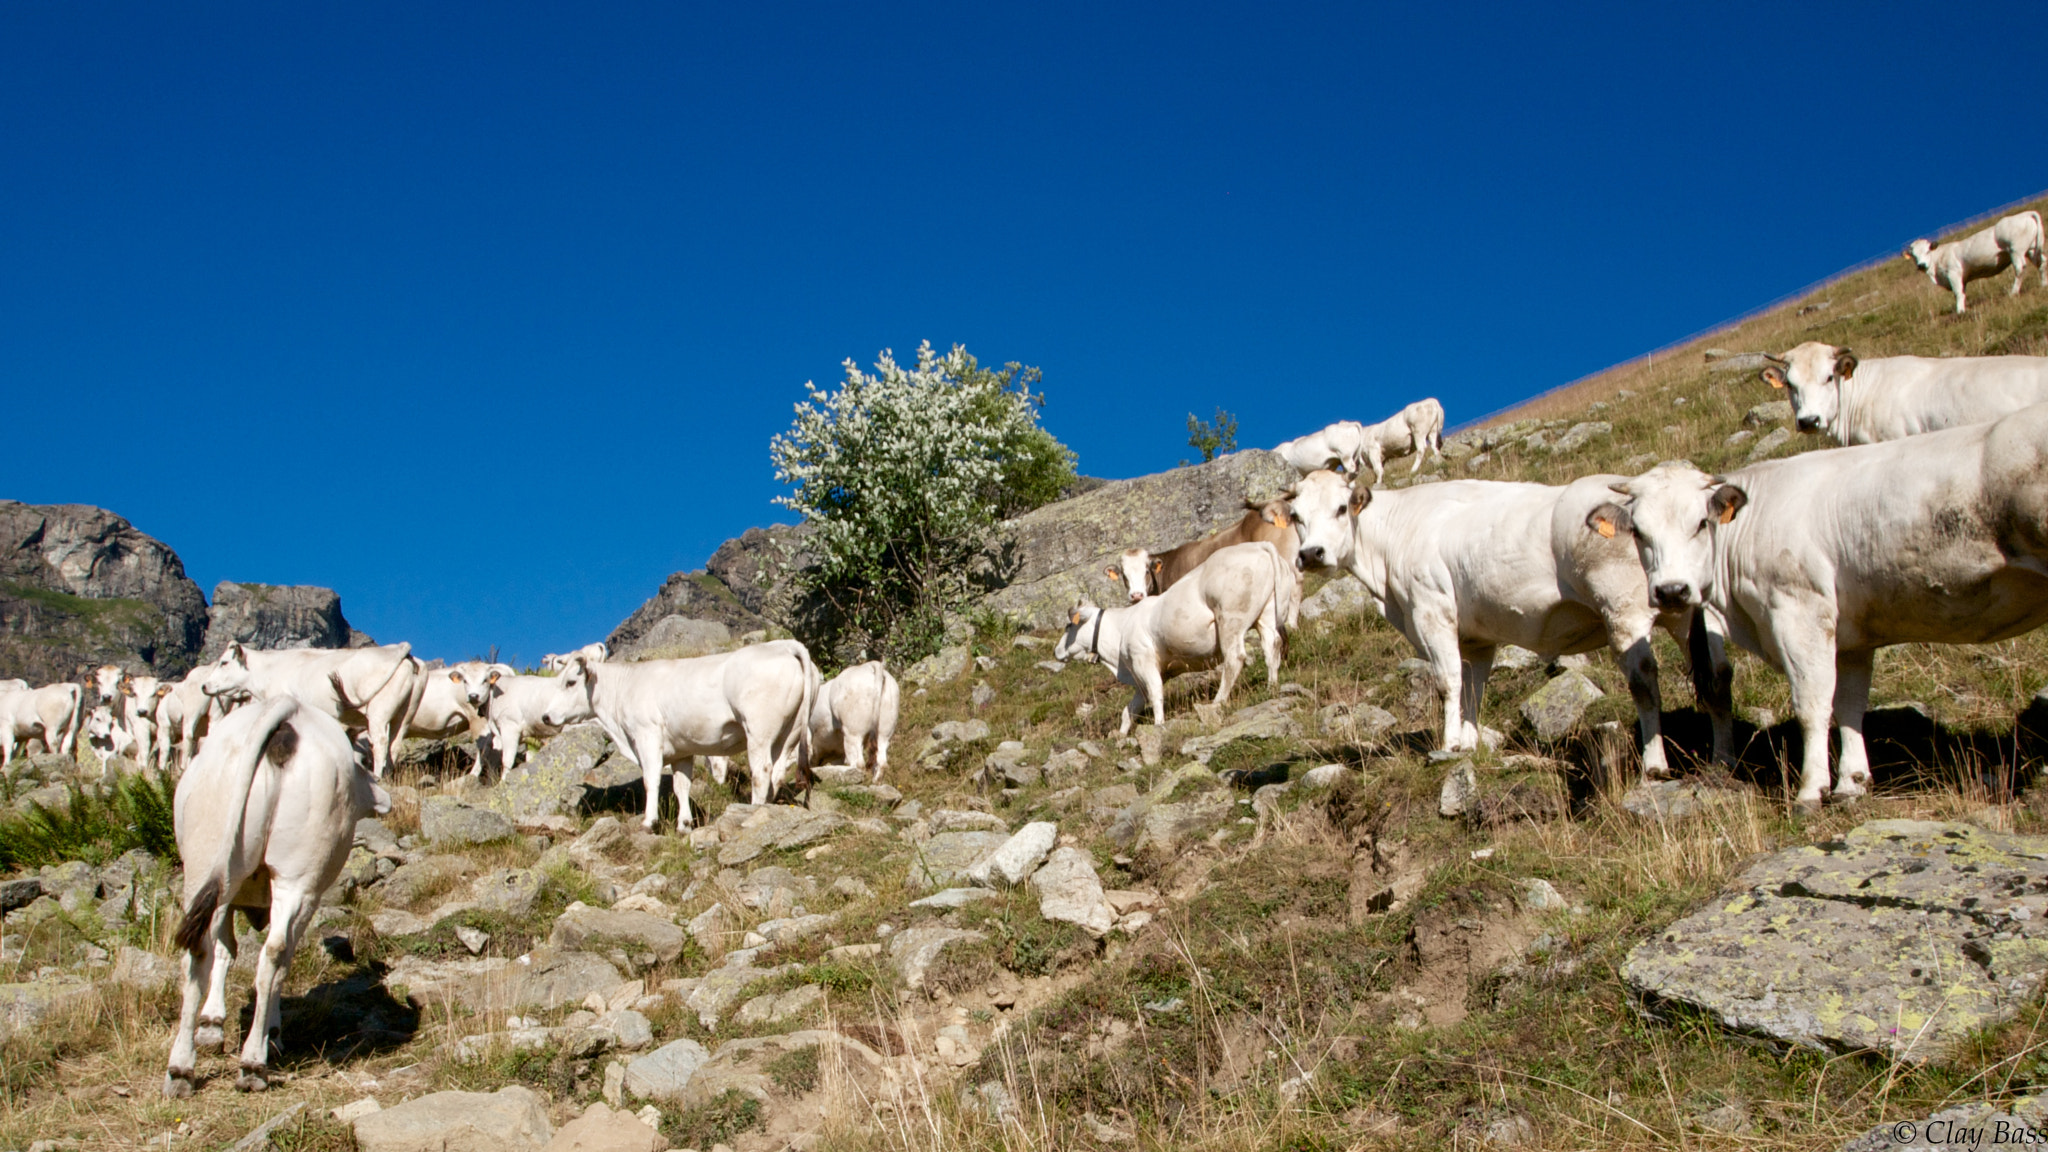 Photograph mountain cows by Clay Bass on 500px